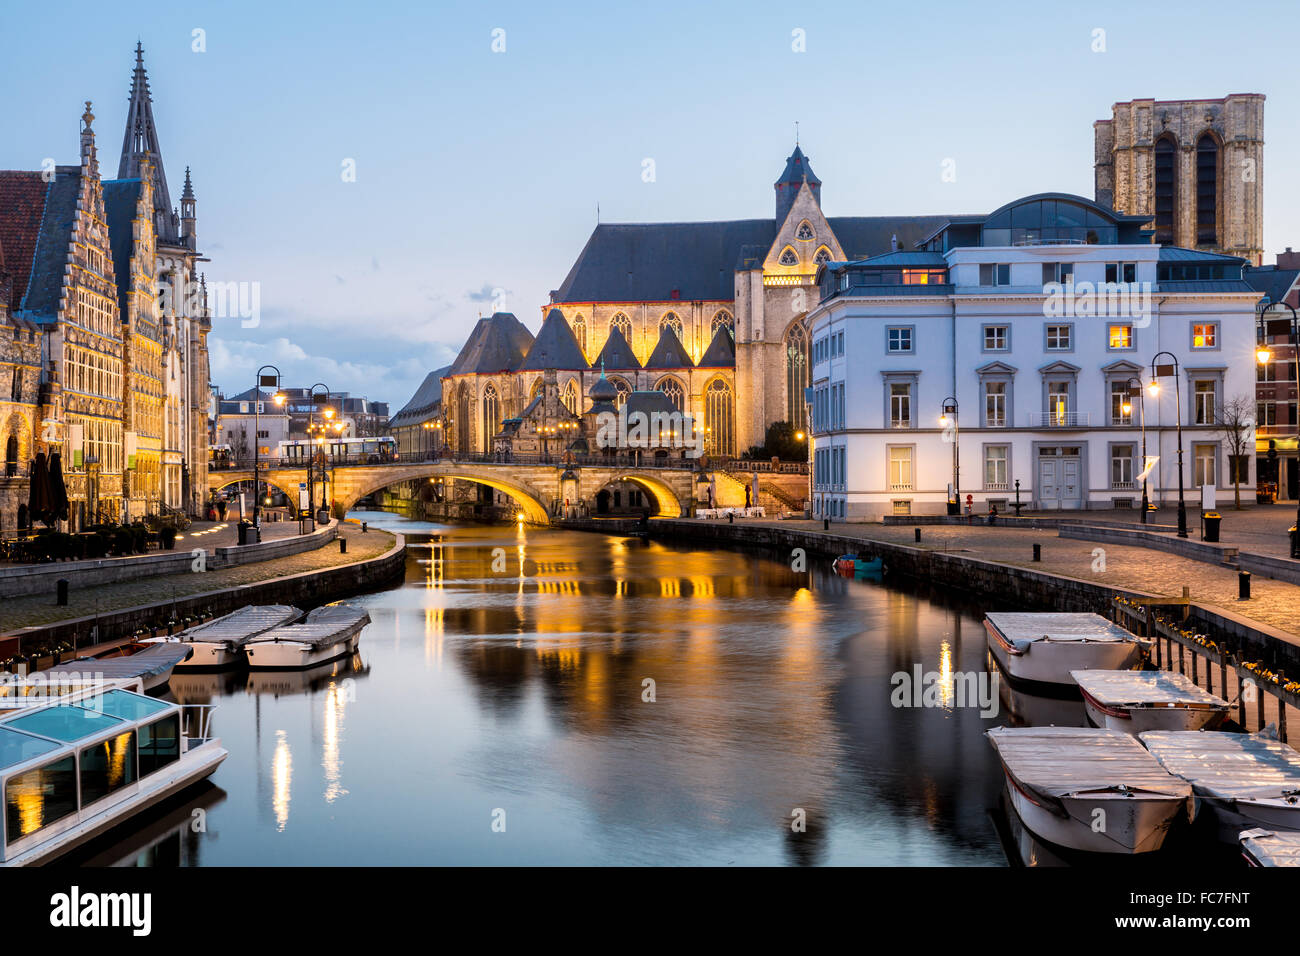 Ghent Old town Belgium - Stock Image